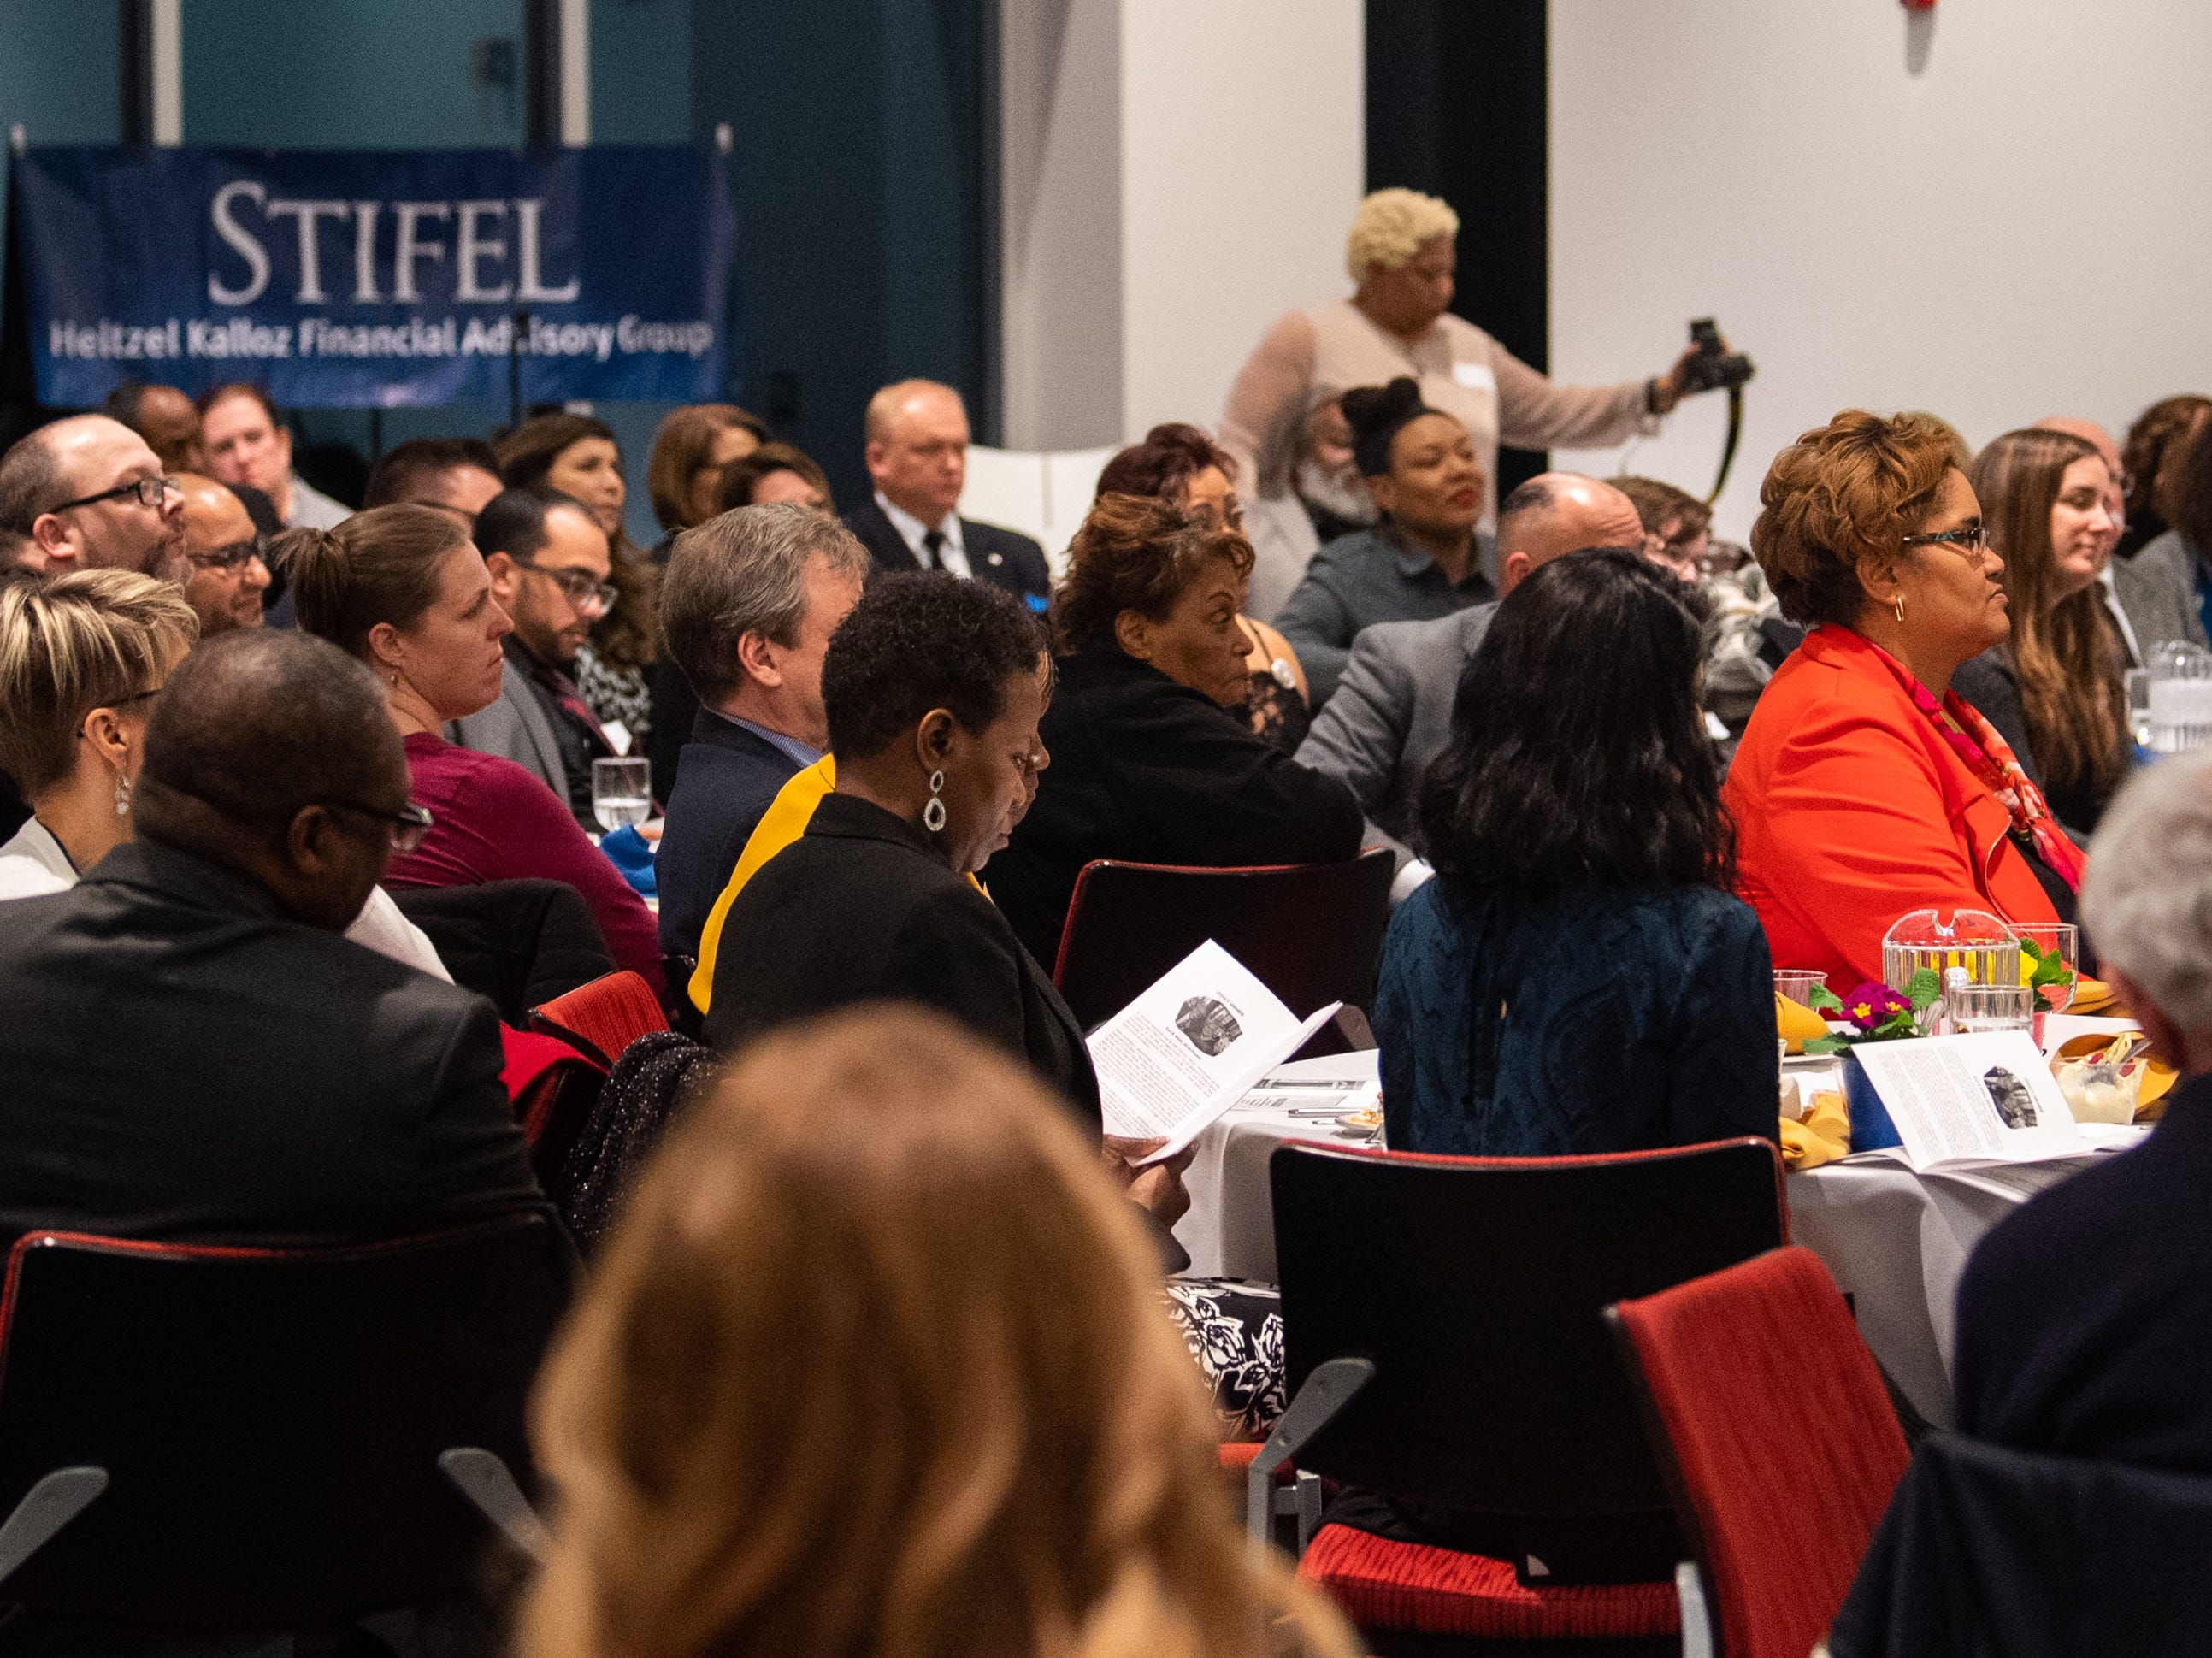 Yorkview Hall at York College was filled with a diverse crowd intently listening to each and every speech, January 9, 2019.